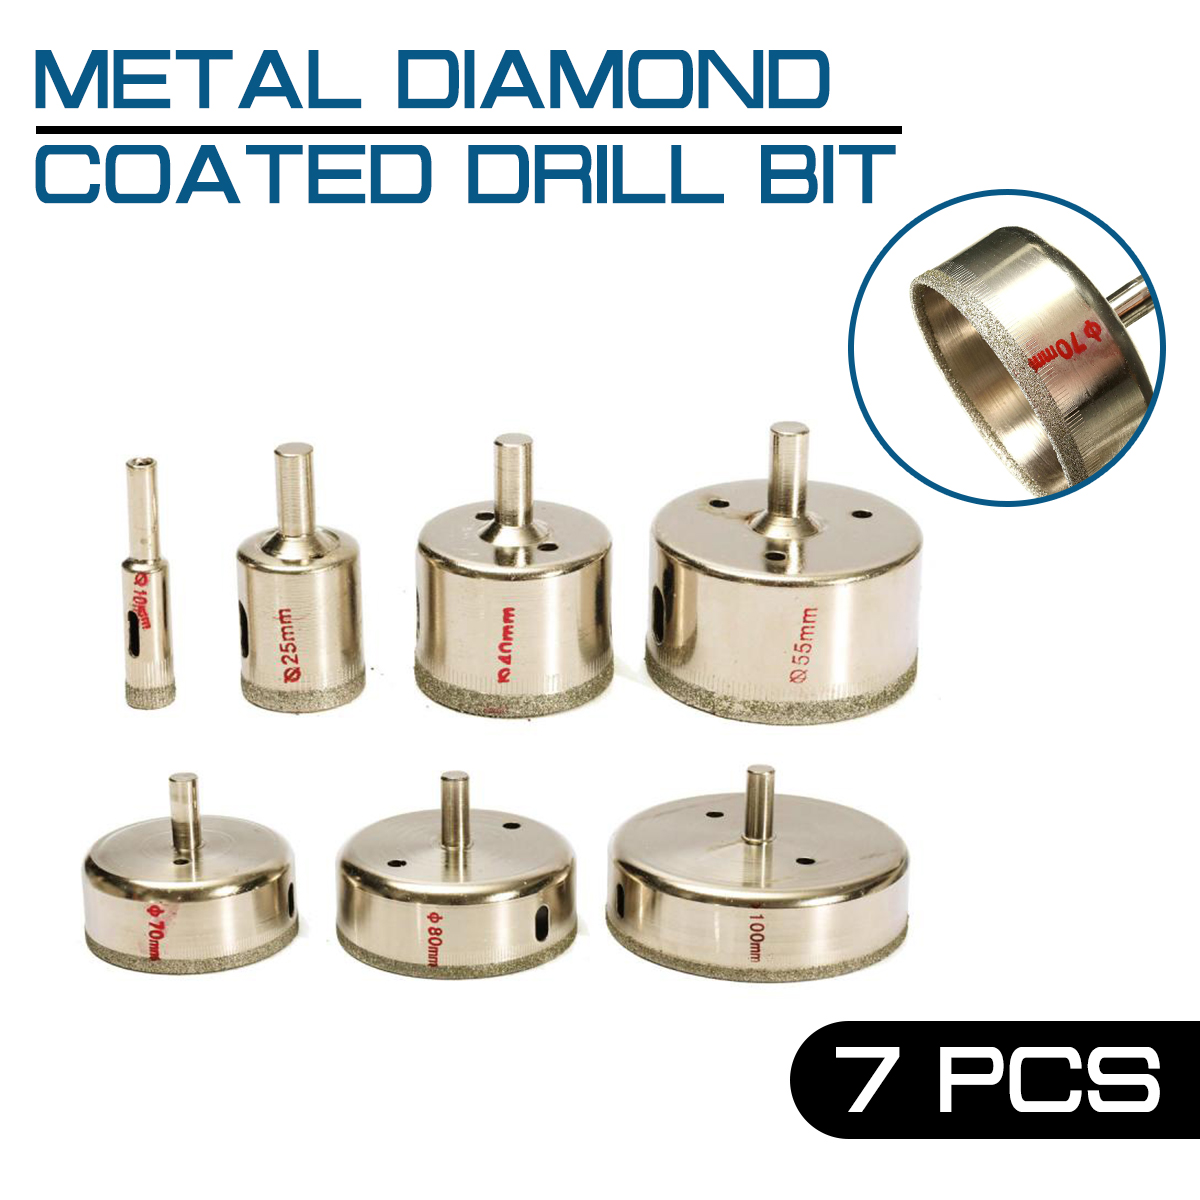 7Pcs Metal Diamond Coated Drill Bit Set 10-100mm Marble Core Hole Tile Glass Saw Tilling image